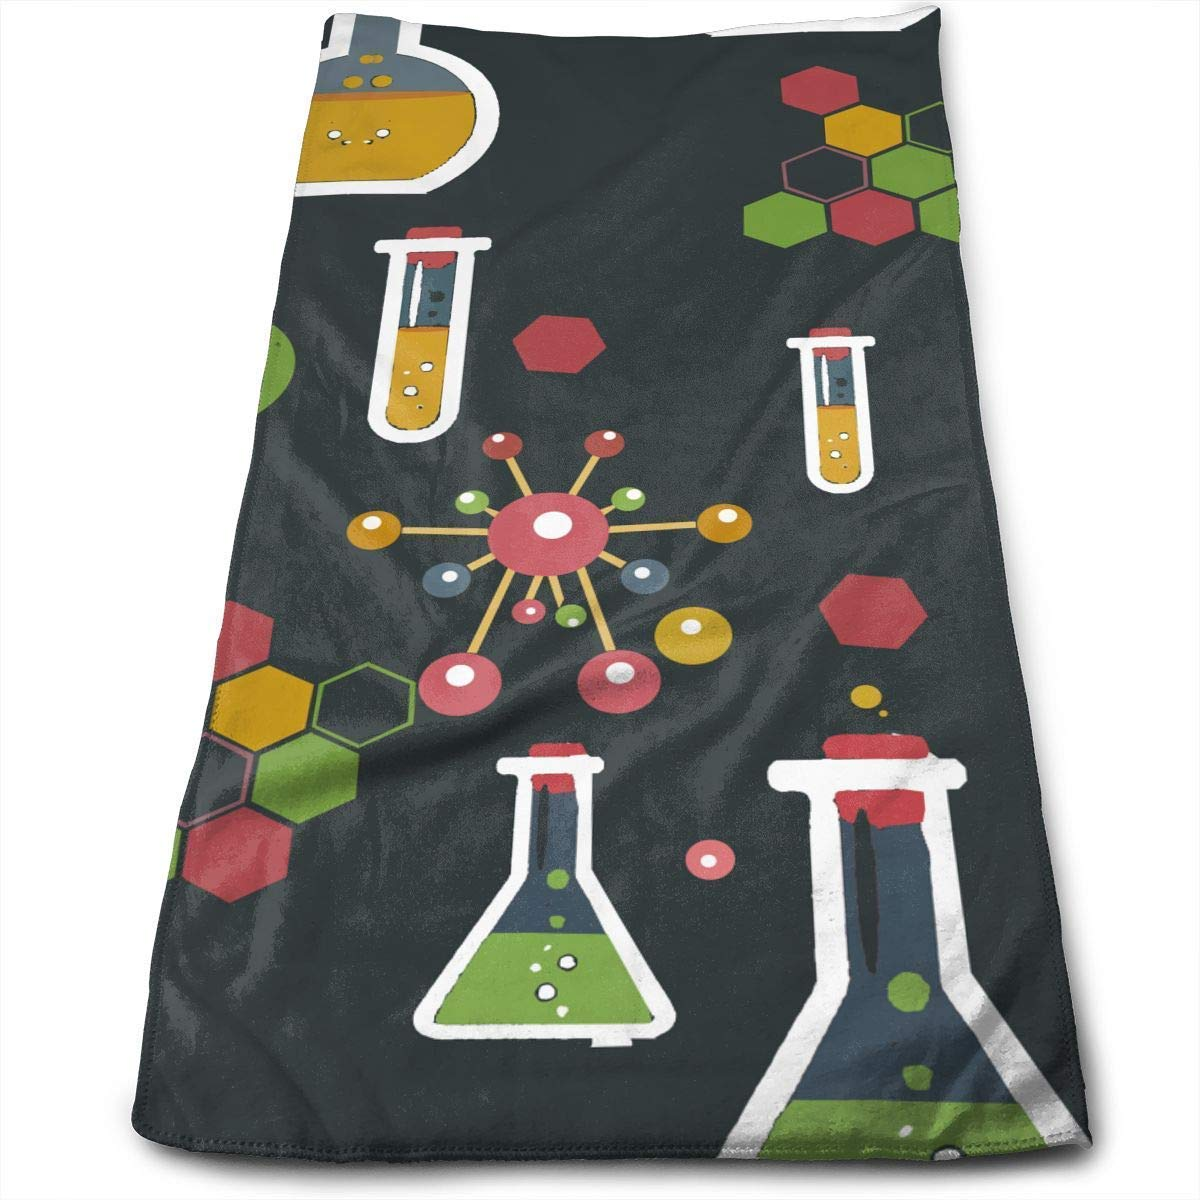 OQUYCZ Funny Chemistry Science Athletic Tube Multi-Purpose Microfiber Towel Ultra Compact Super Absorbent and Fast Drying Sports Towel Travel Towel Beach Towel Perfect for Camping, Gym, Swimming.